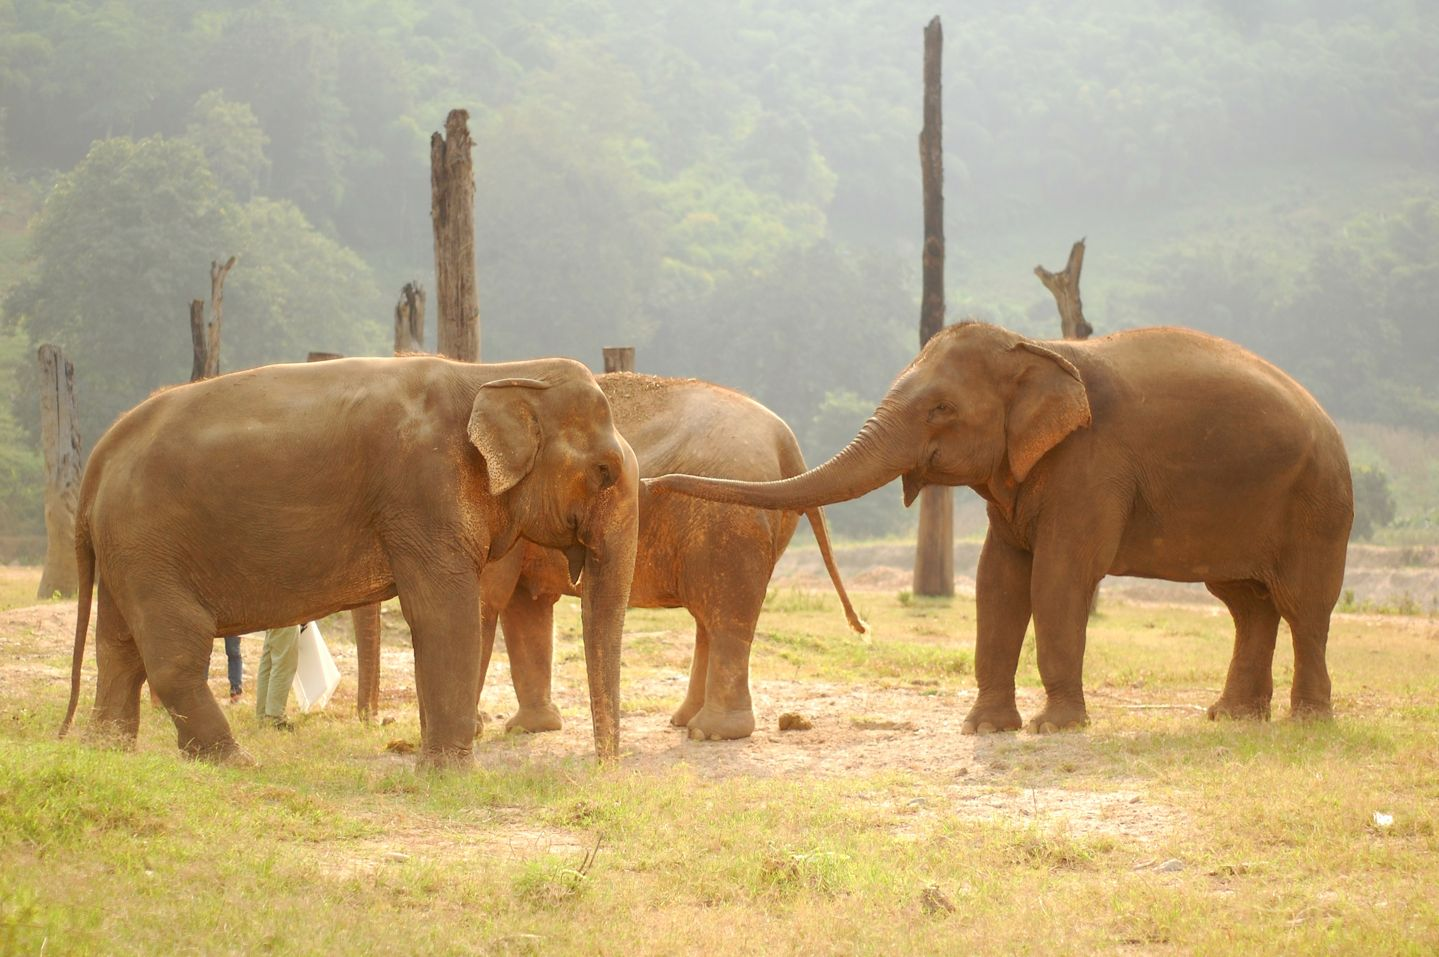 photos from southeast asia that will make you smile elephants southeast photo essay